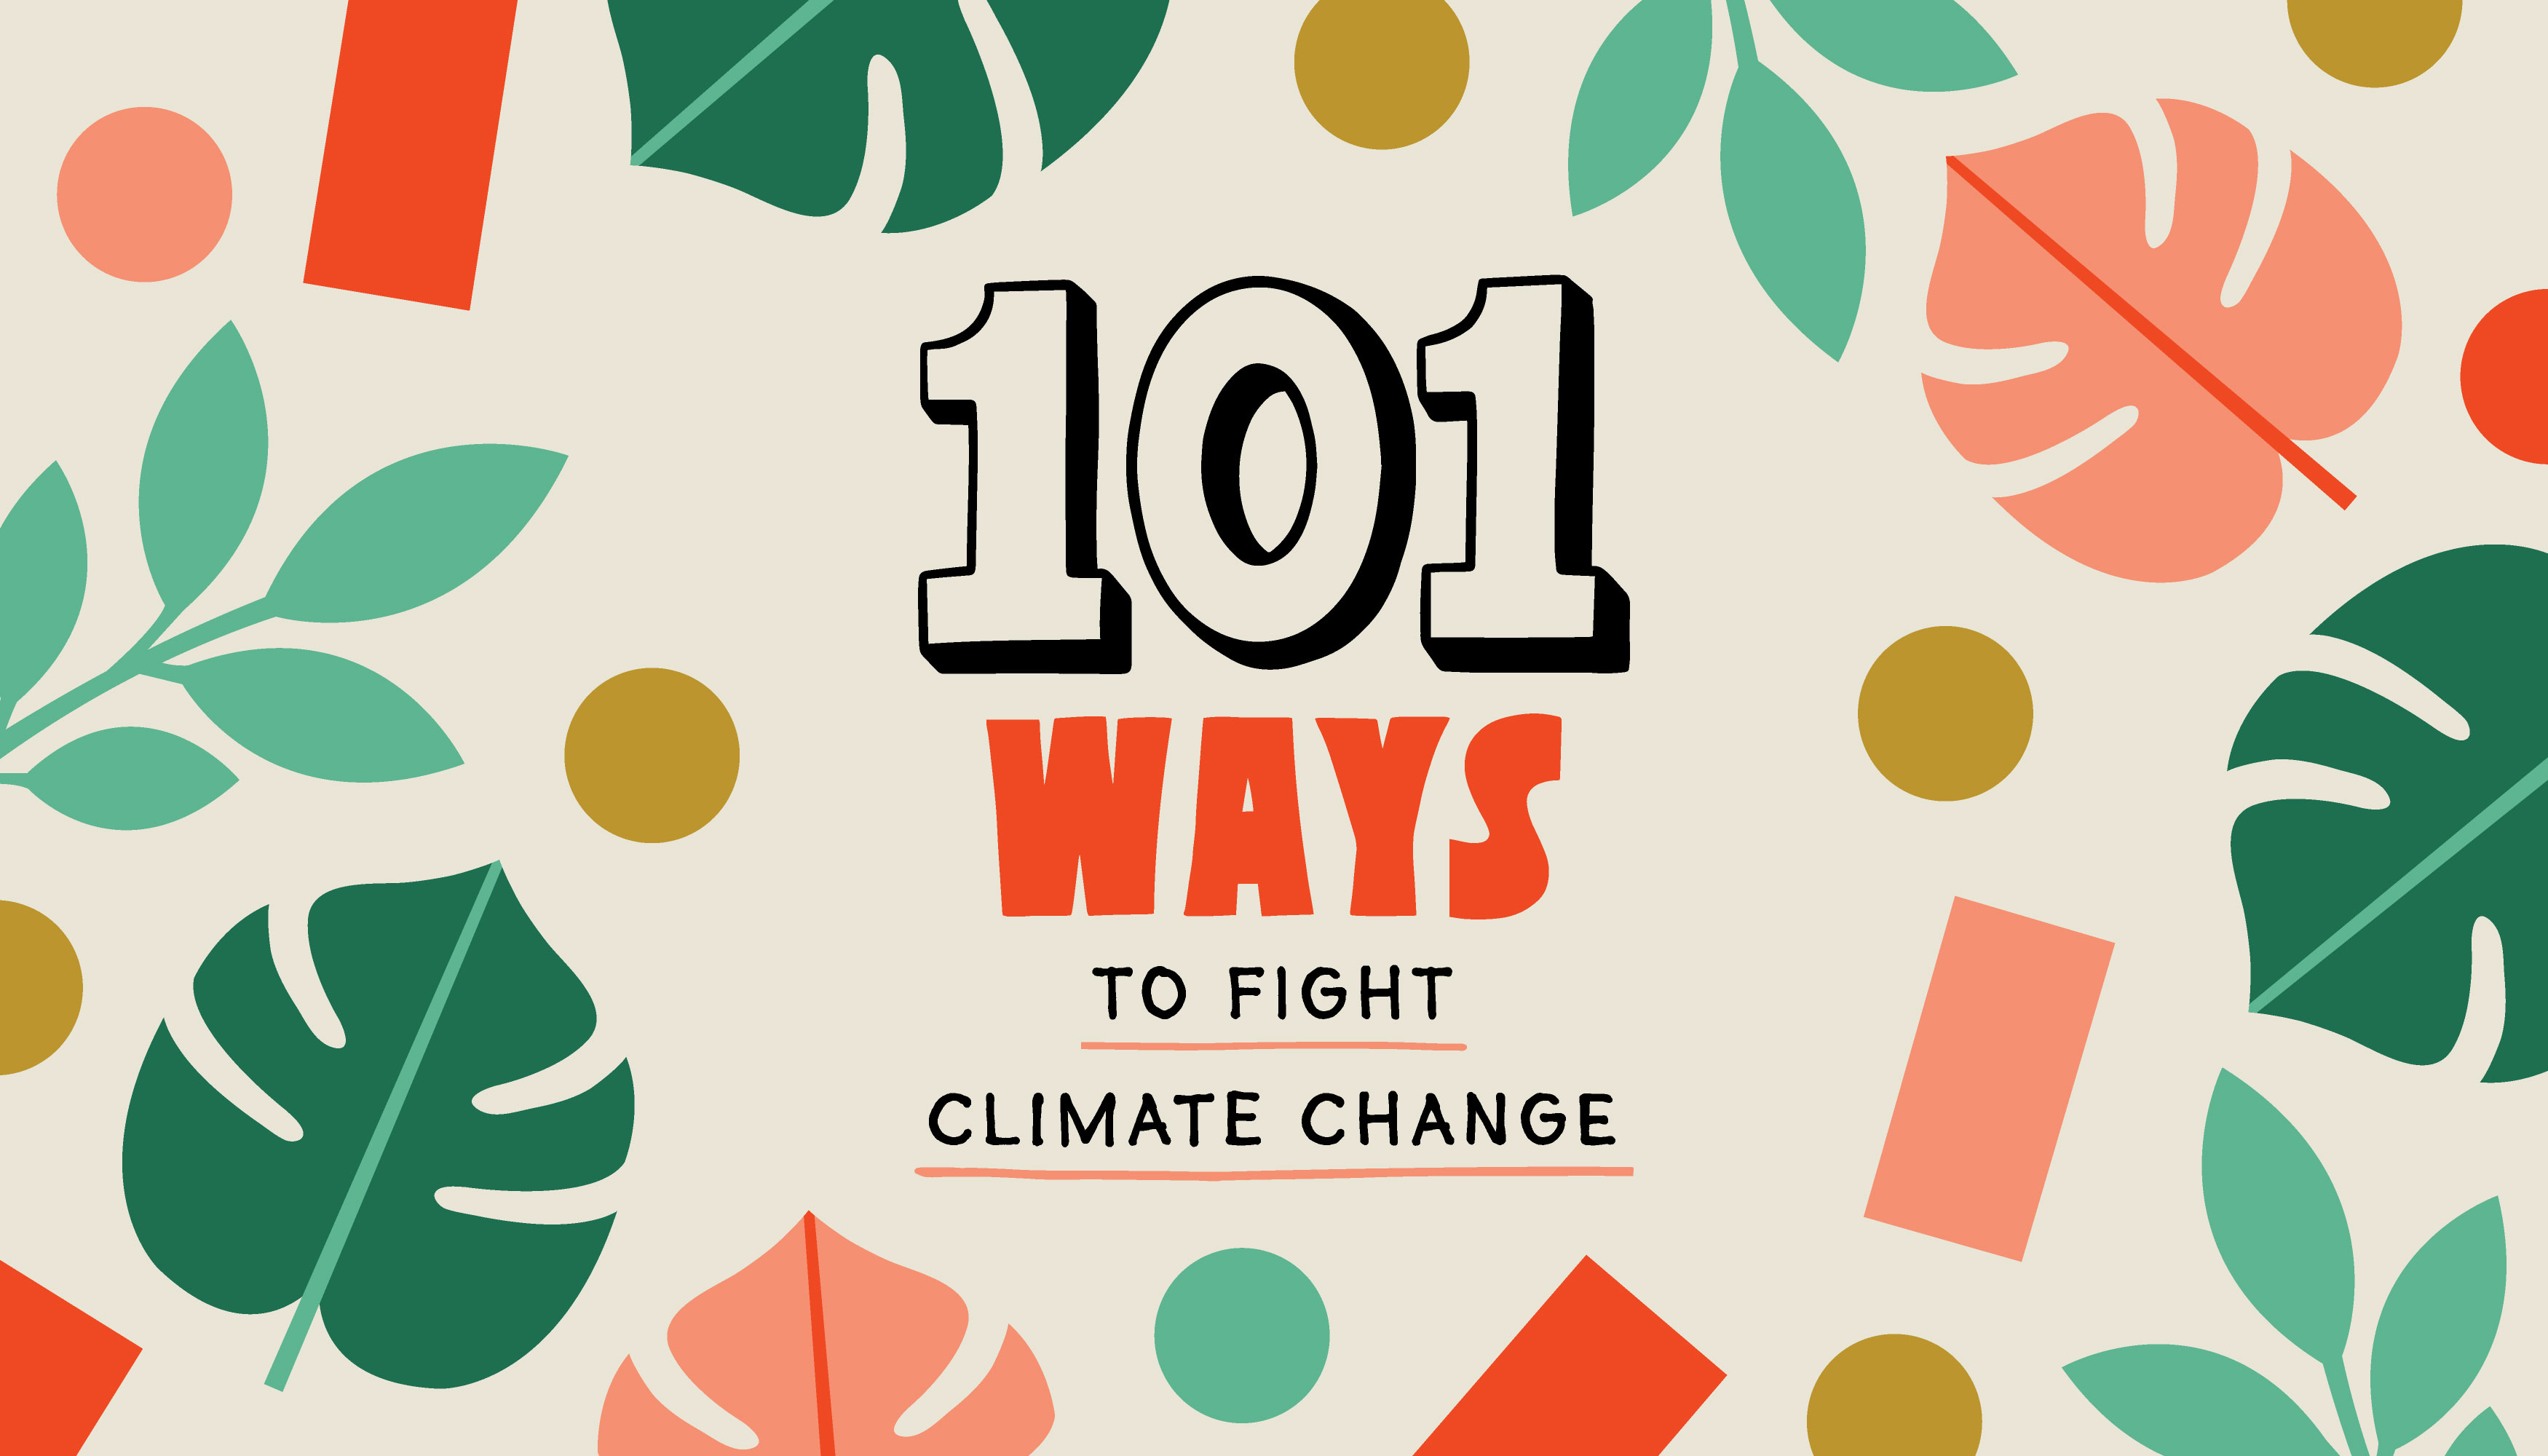 101 ways to fight climate change